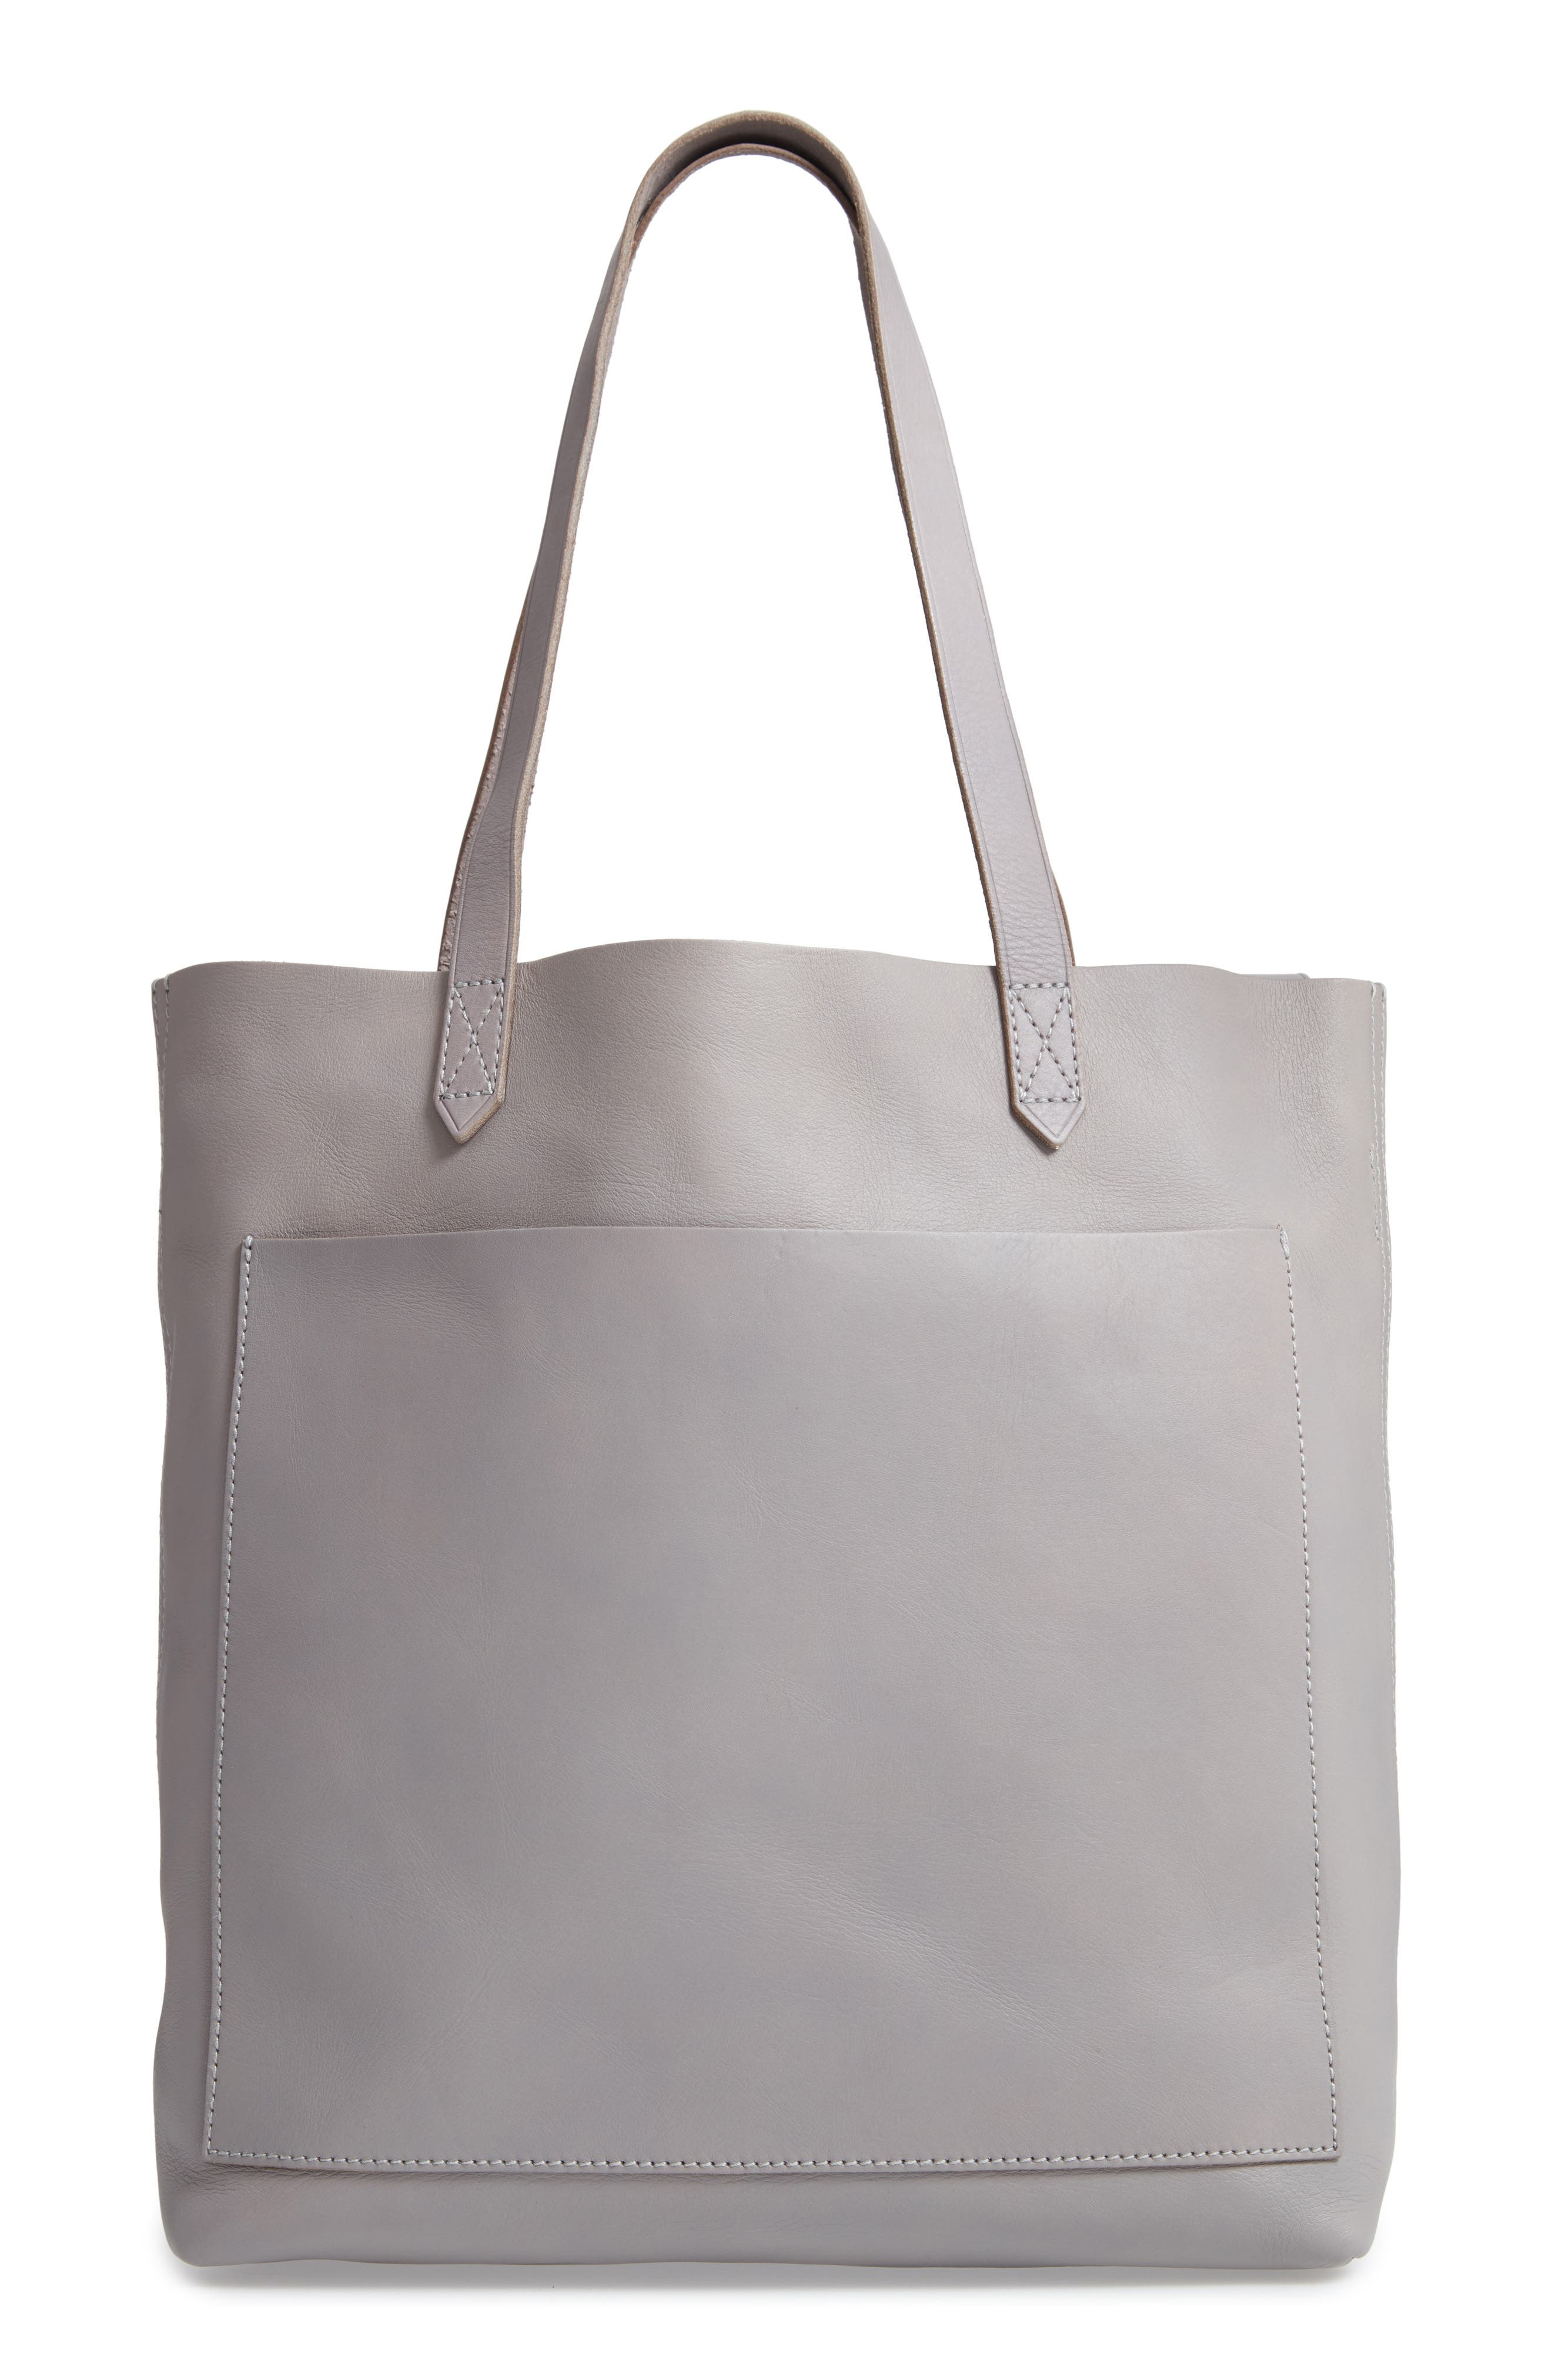 Medium Leather Transport Tote,                             Main thumbnail 1, color,